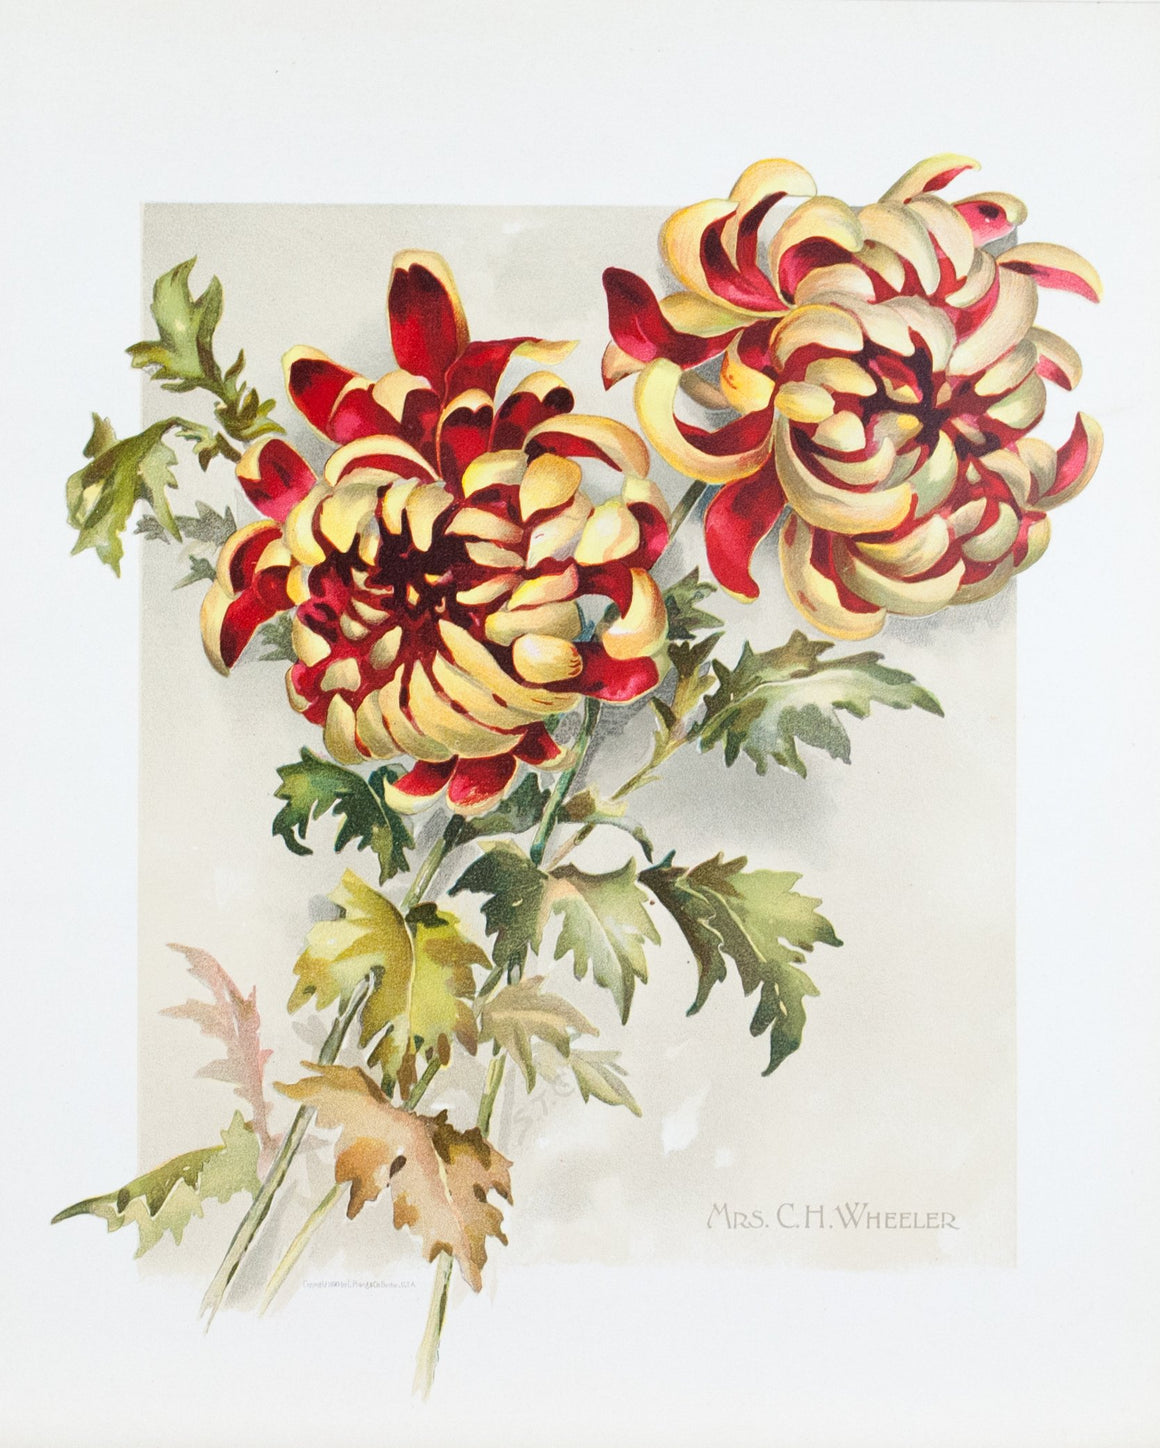 1890 Mrs. C. H. Wheeler Chrysanthemum - Mathews